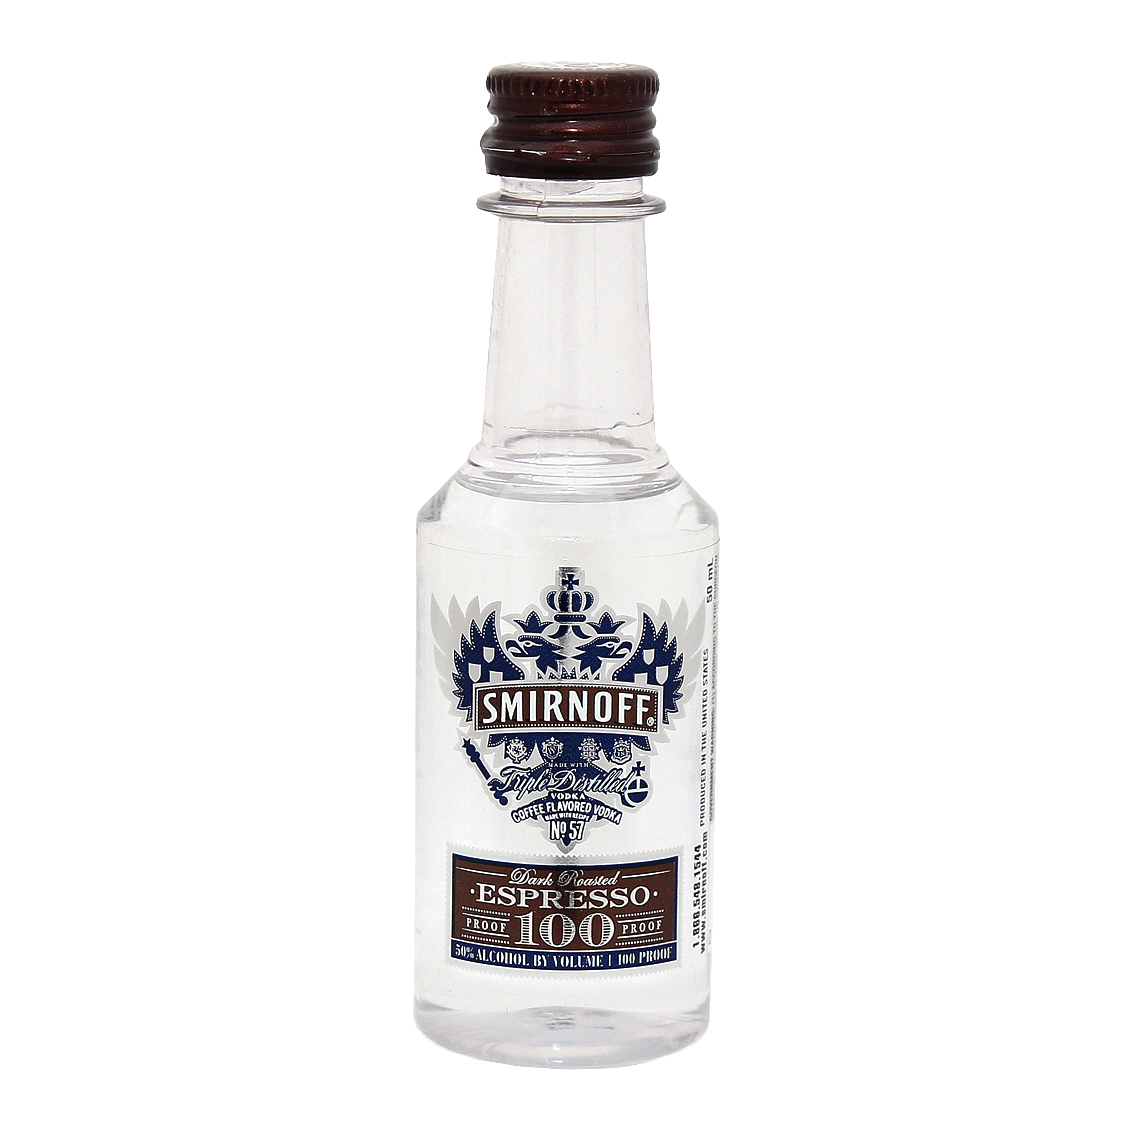 VODKA-SMIRNOFF-100-proof-ESPRESSO